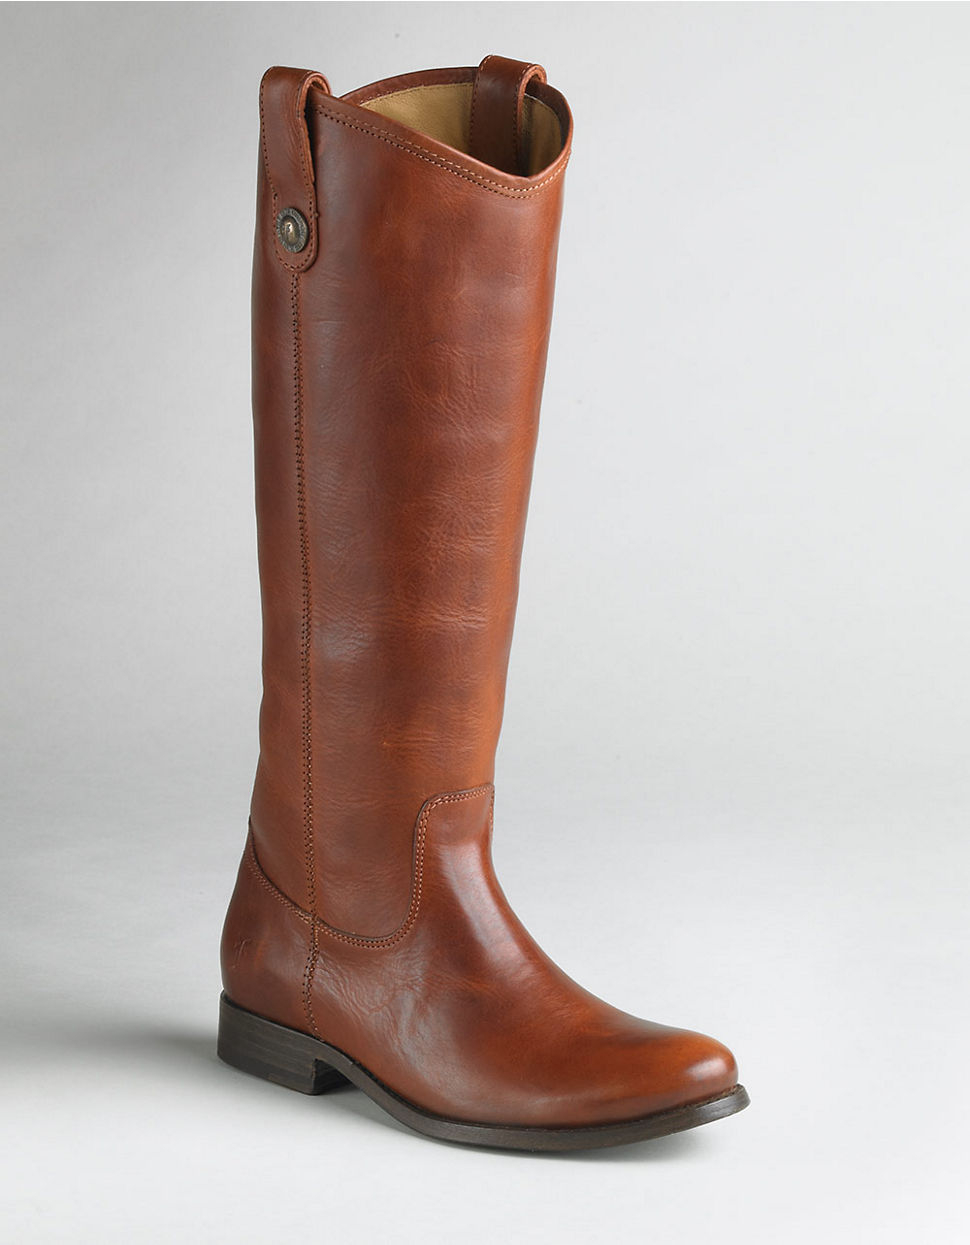 Frye Melissa Wide Calf Boots in Brown (cognac leather)